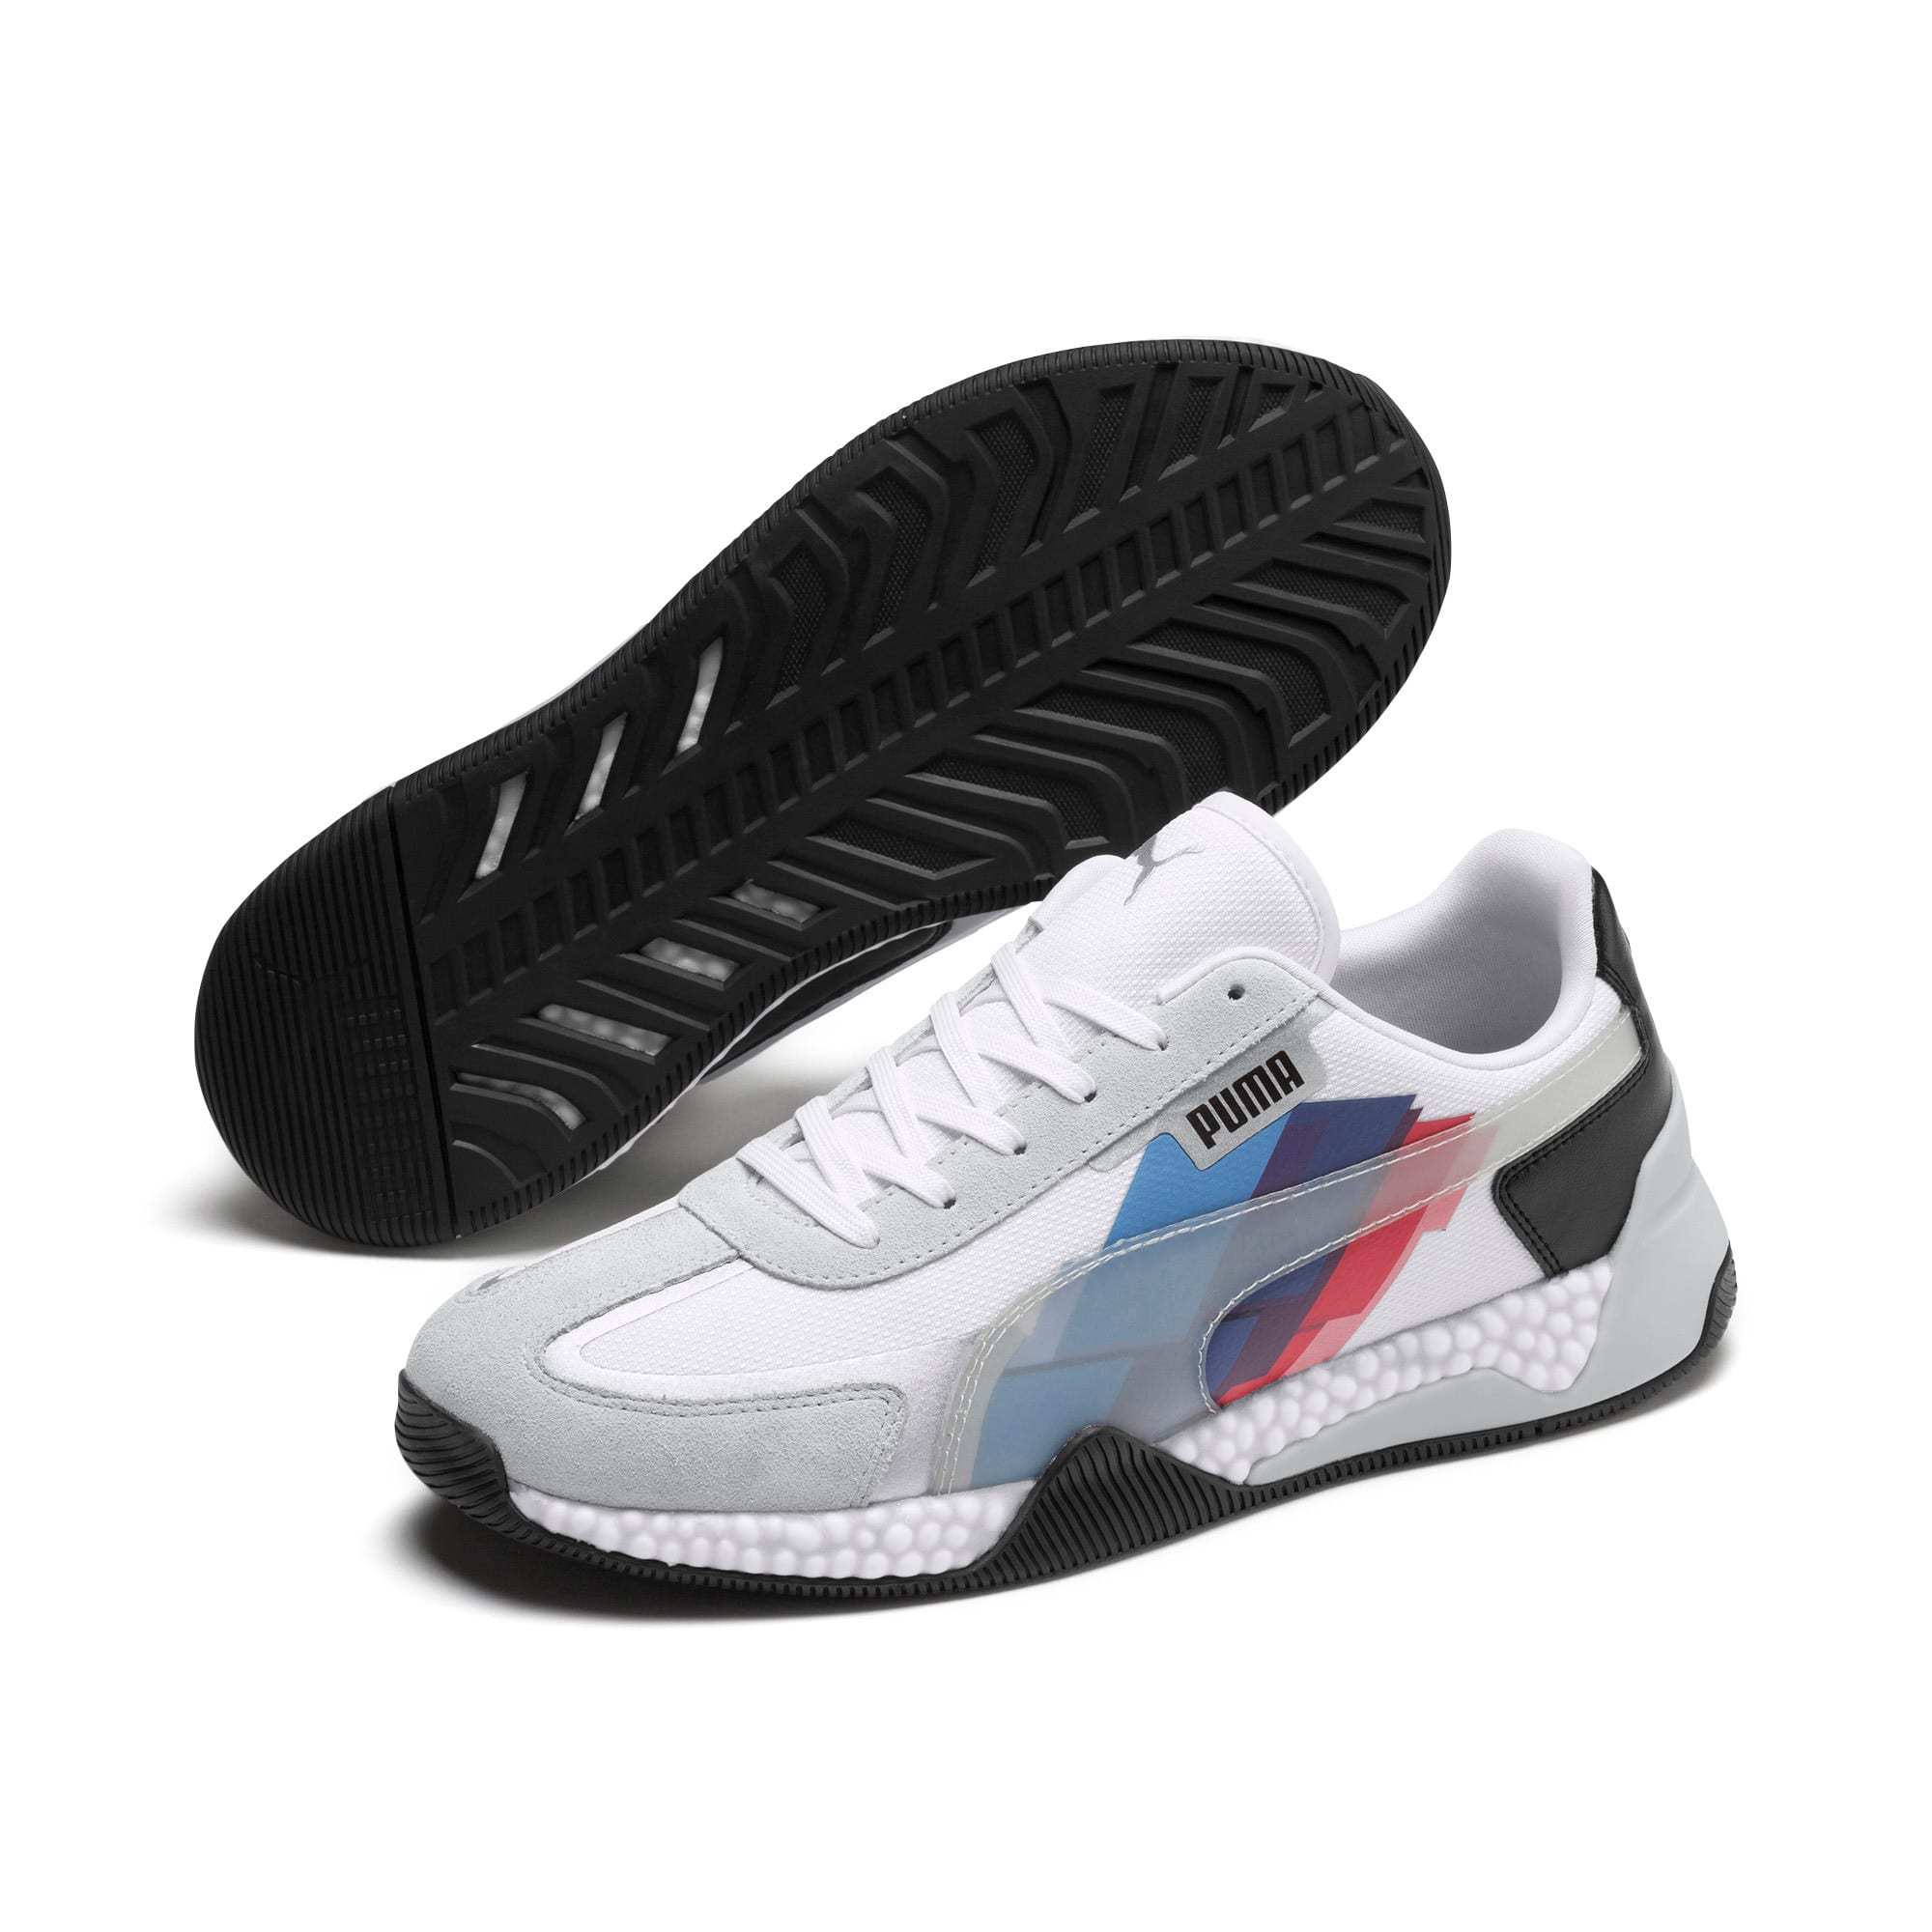 Miniatura 3 de Zapatos para correr BMW M Motorsport Speed HYBRID, White-Glacier Gray-Black, mediano